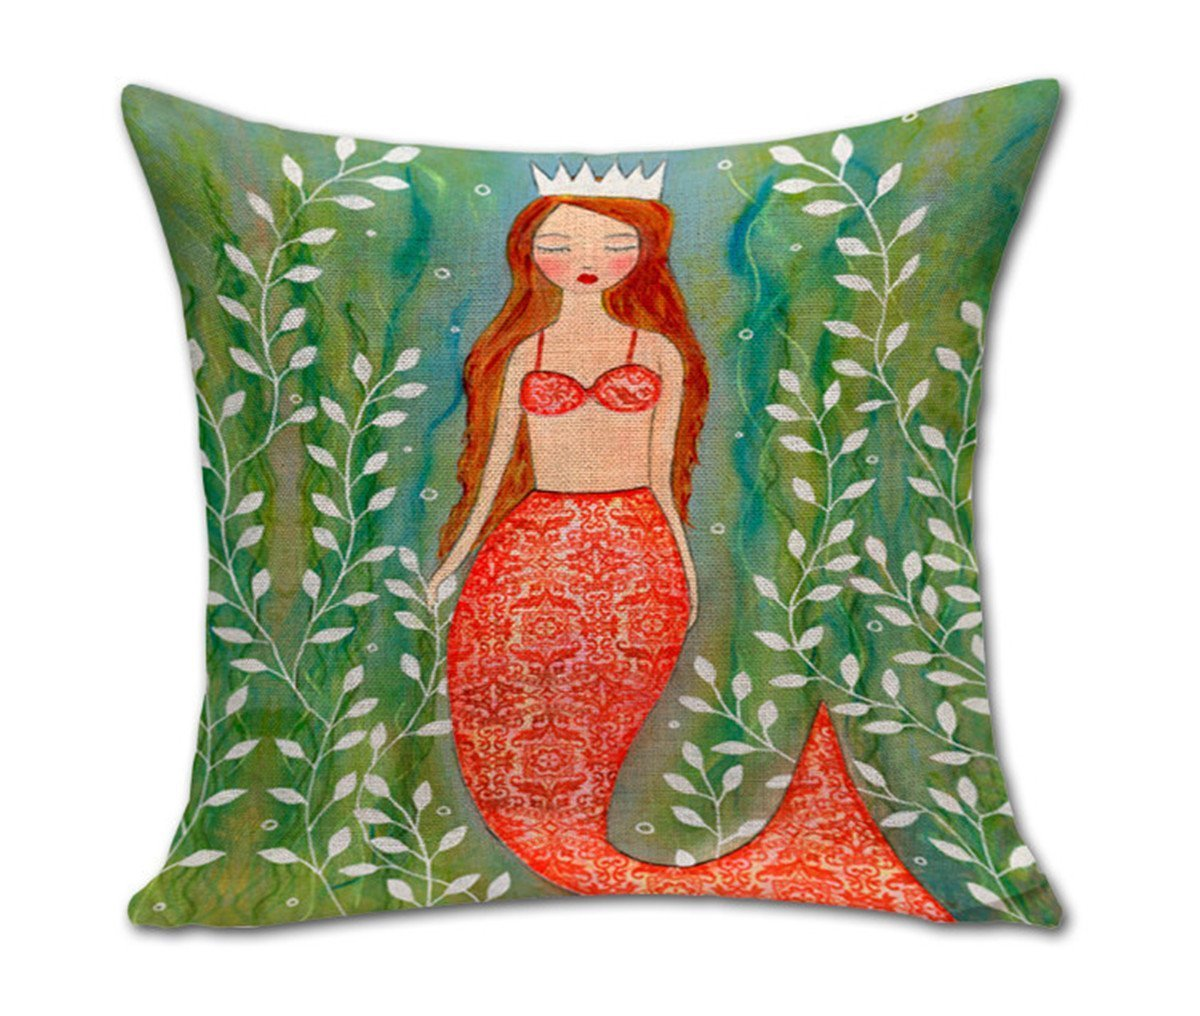 AISHN mermaid cushion cover with red hair